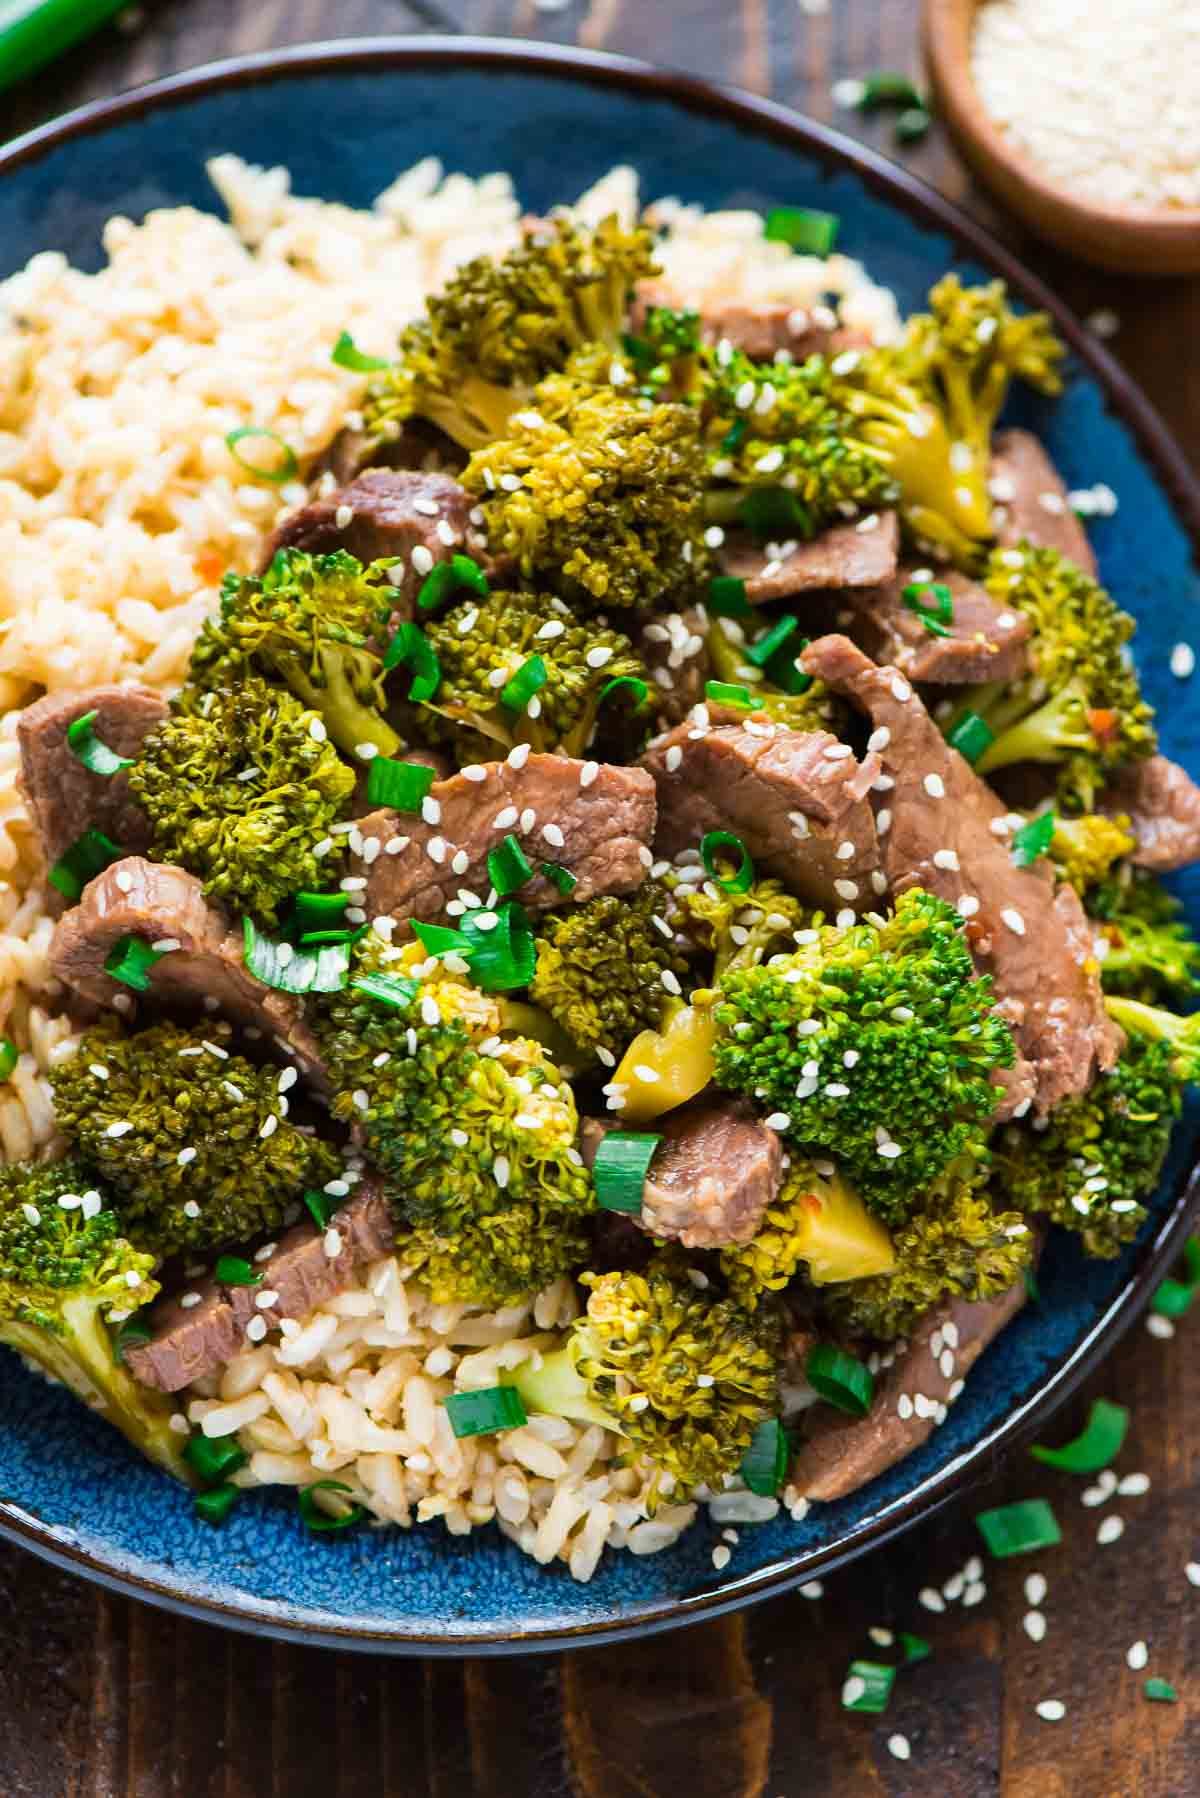 Easy Slow Cooker Beef and Broccoli. Simple, tasty, healthy, and great for leftovers! Recipe at wellplated.com | @wellplated